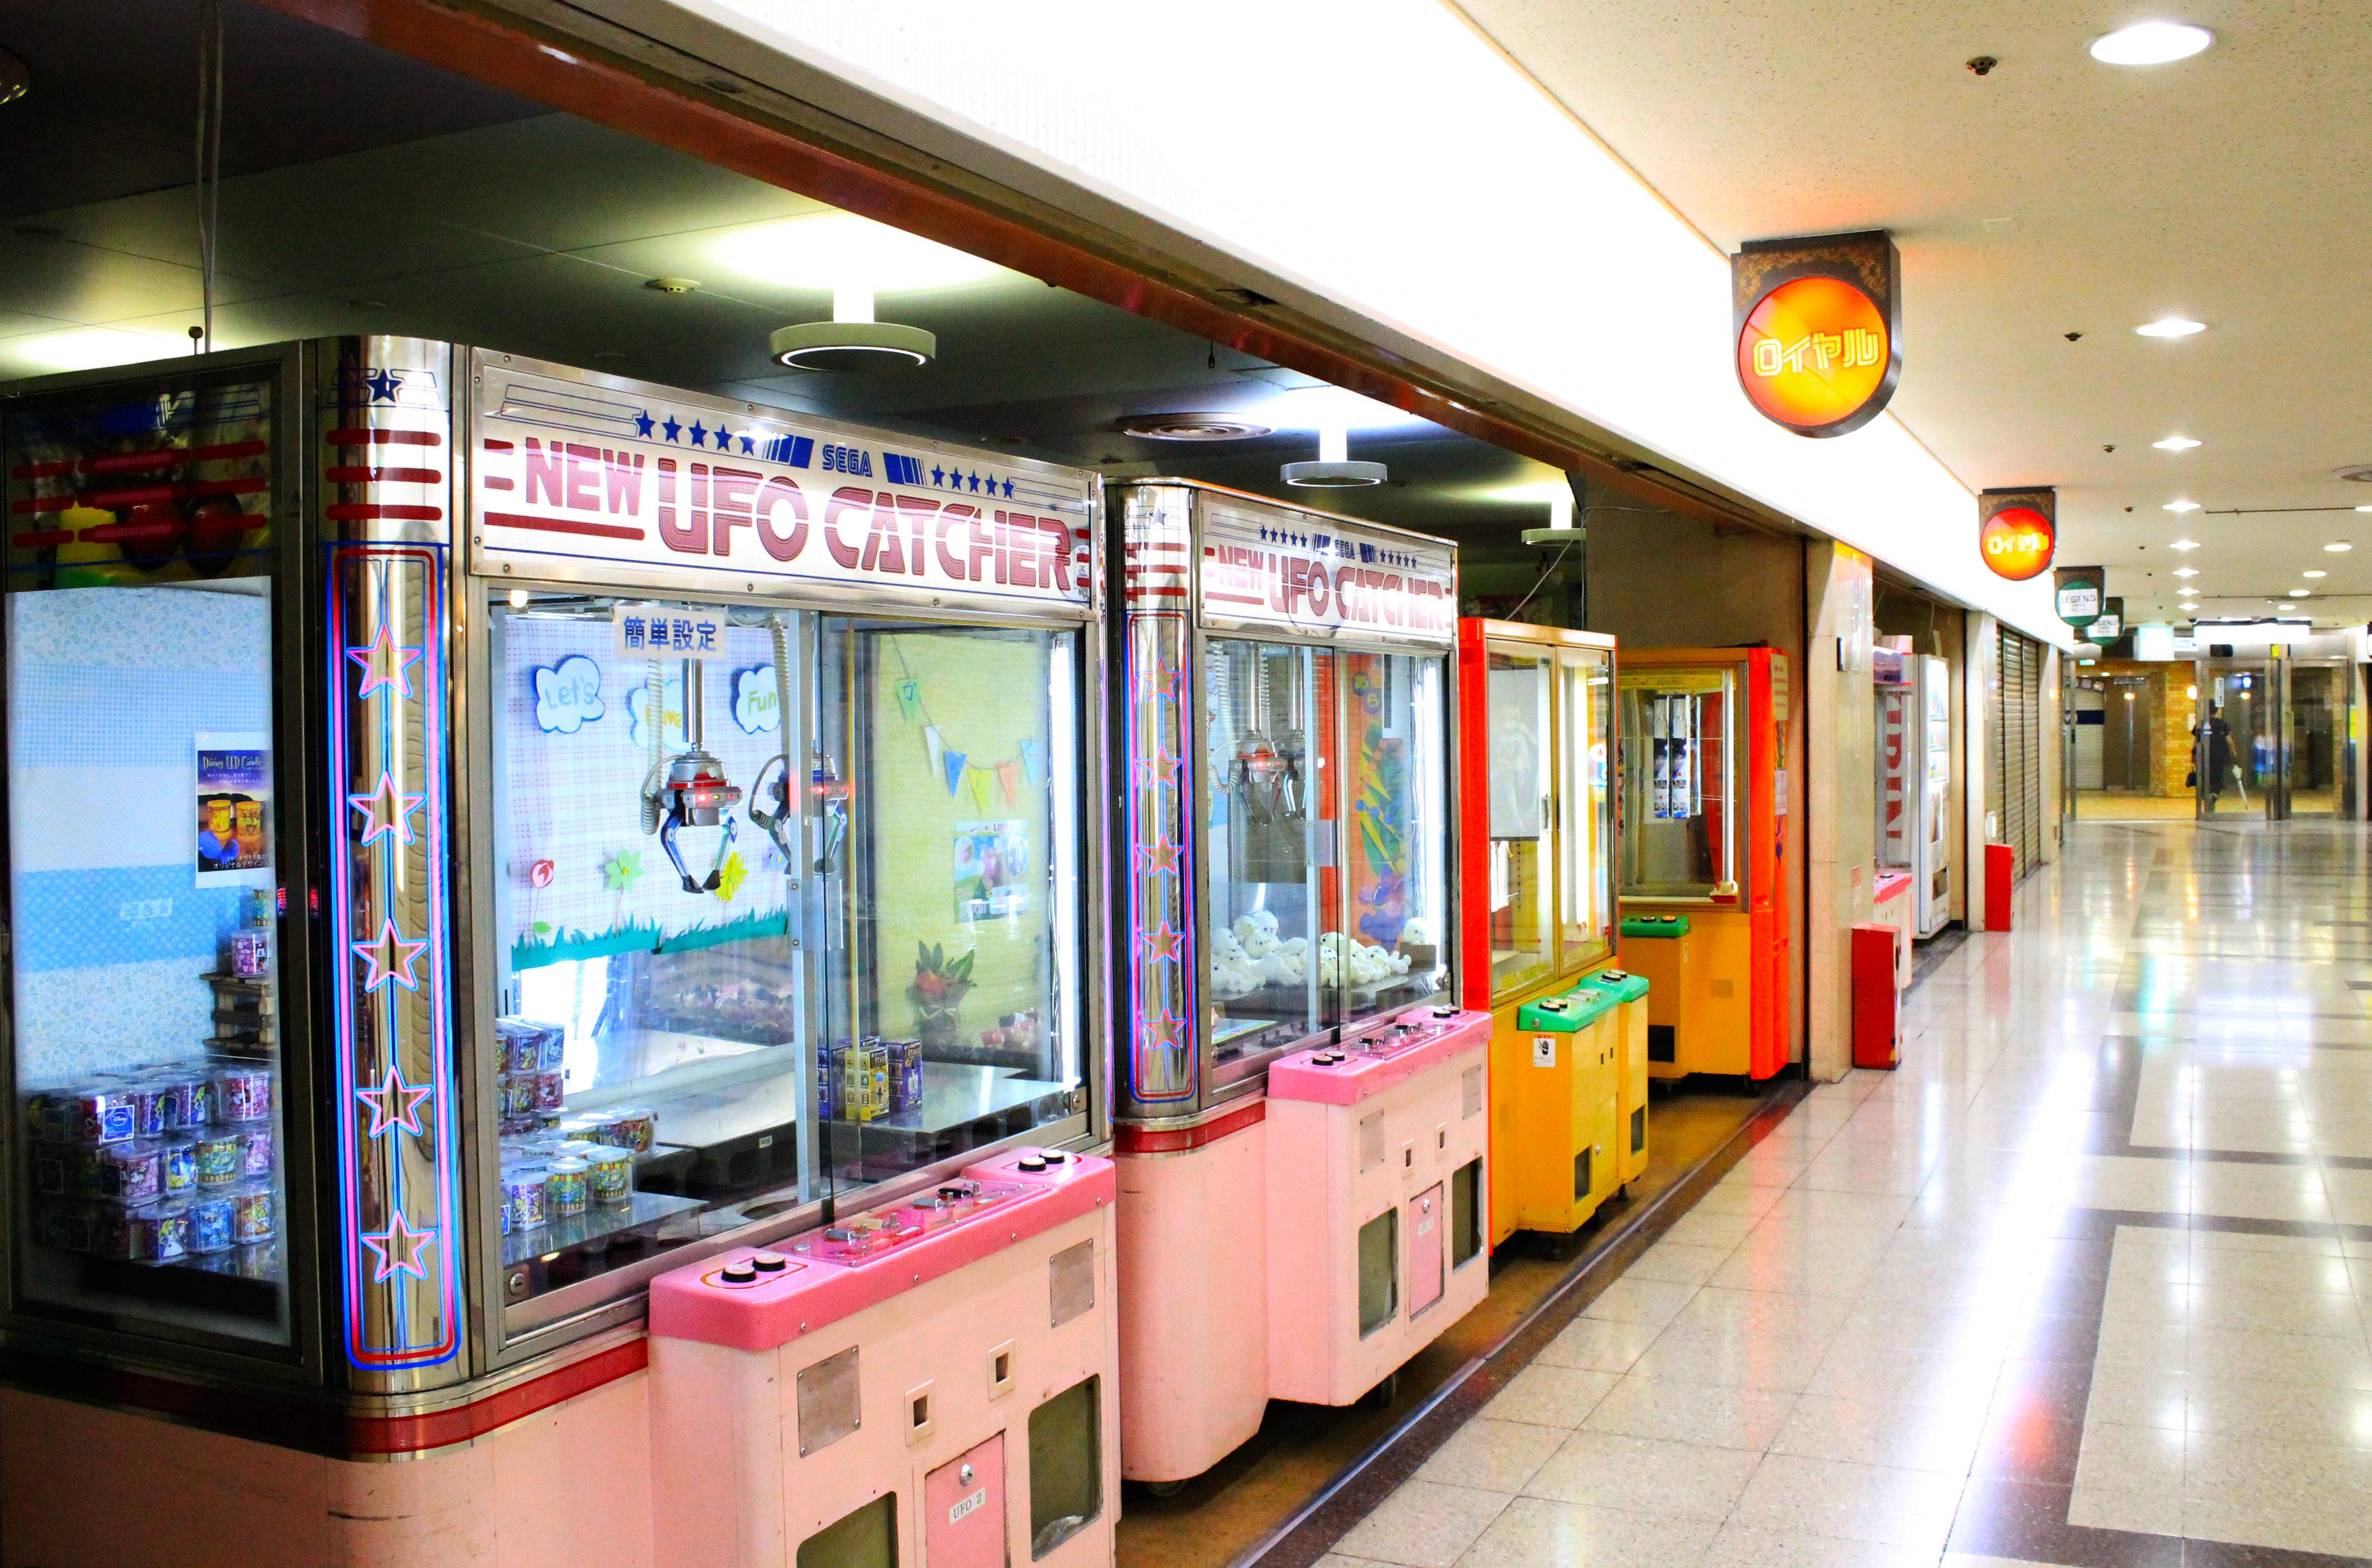 Royal Game Center Umeda Retroarcade Retro Arcade Arcade Claw